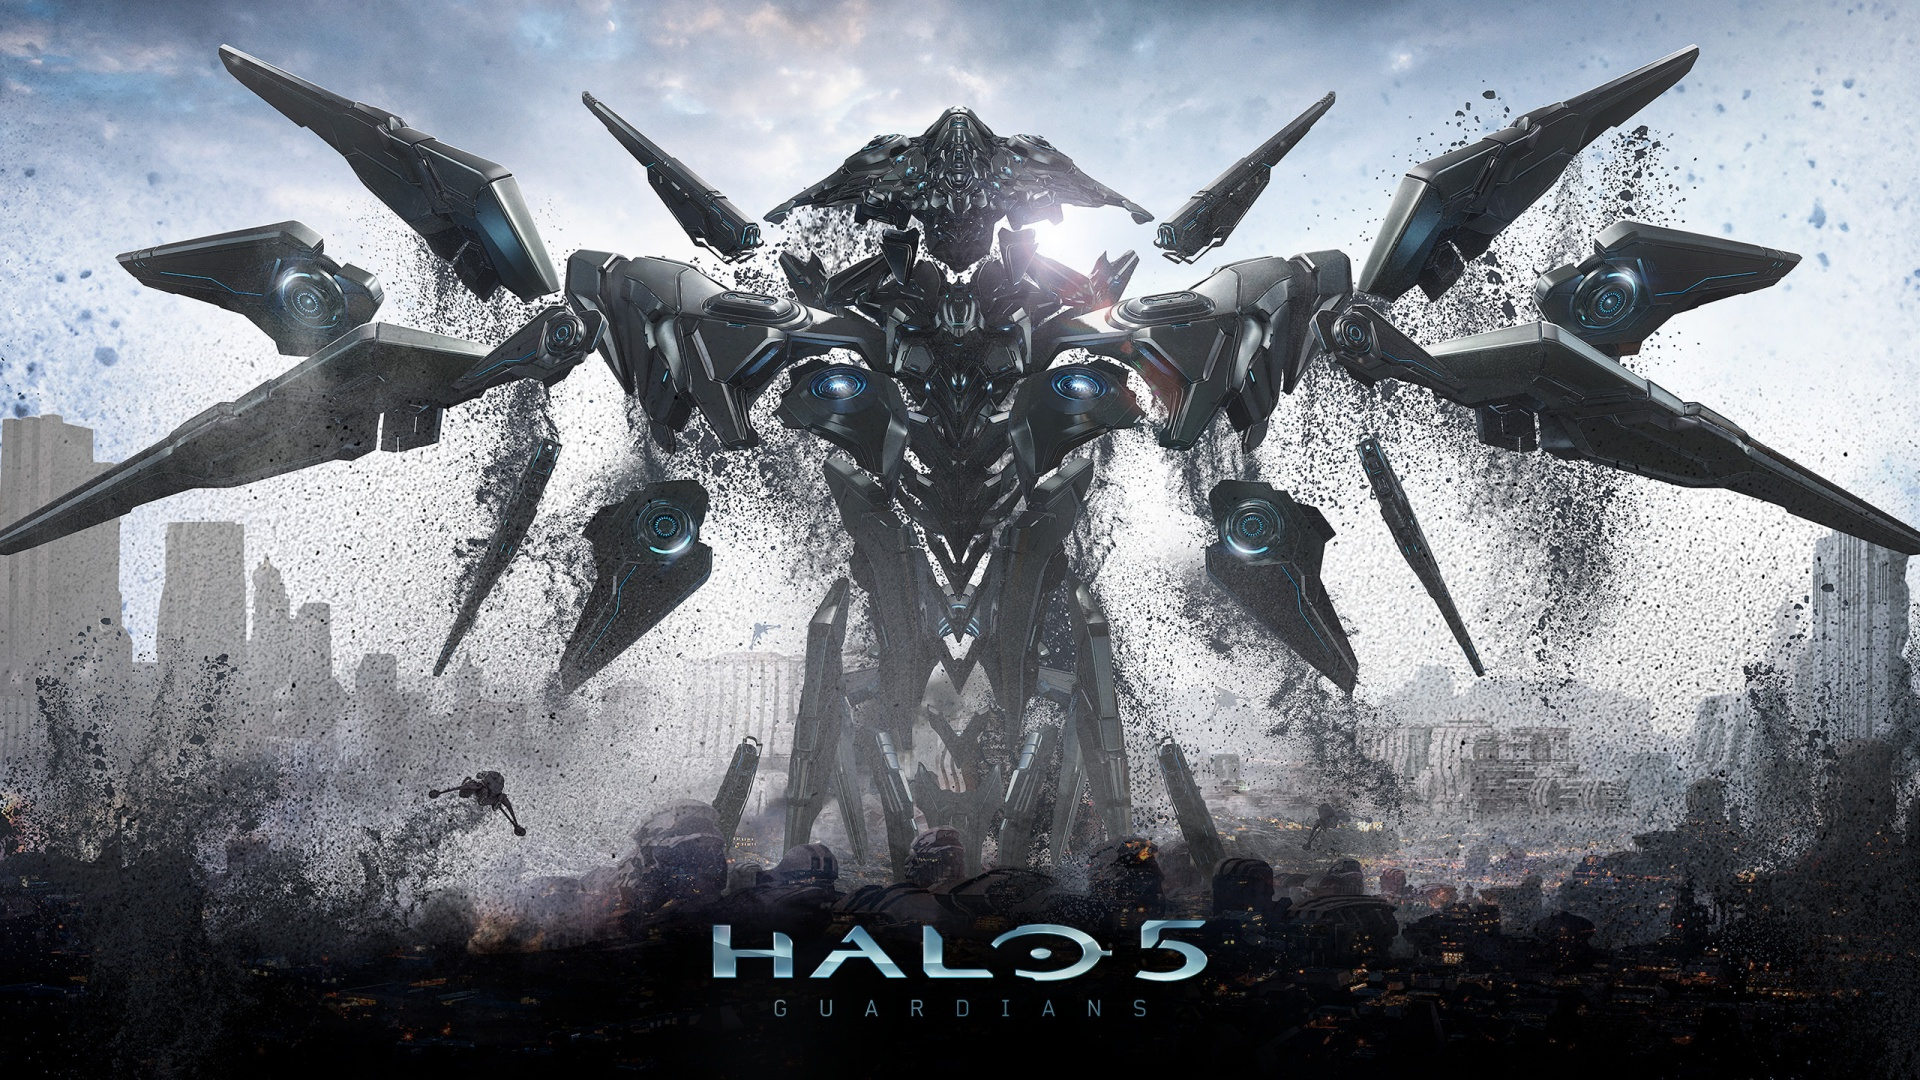 Guardian Halo 5 Guardians